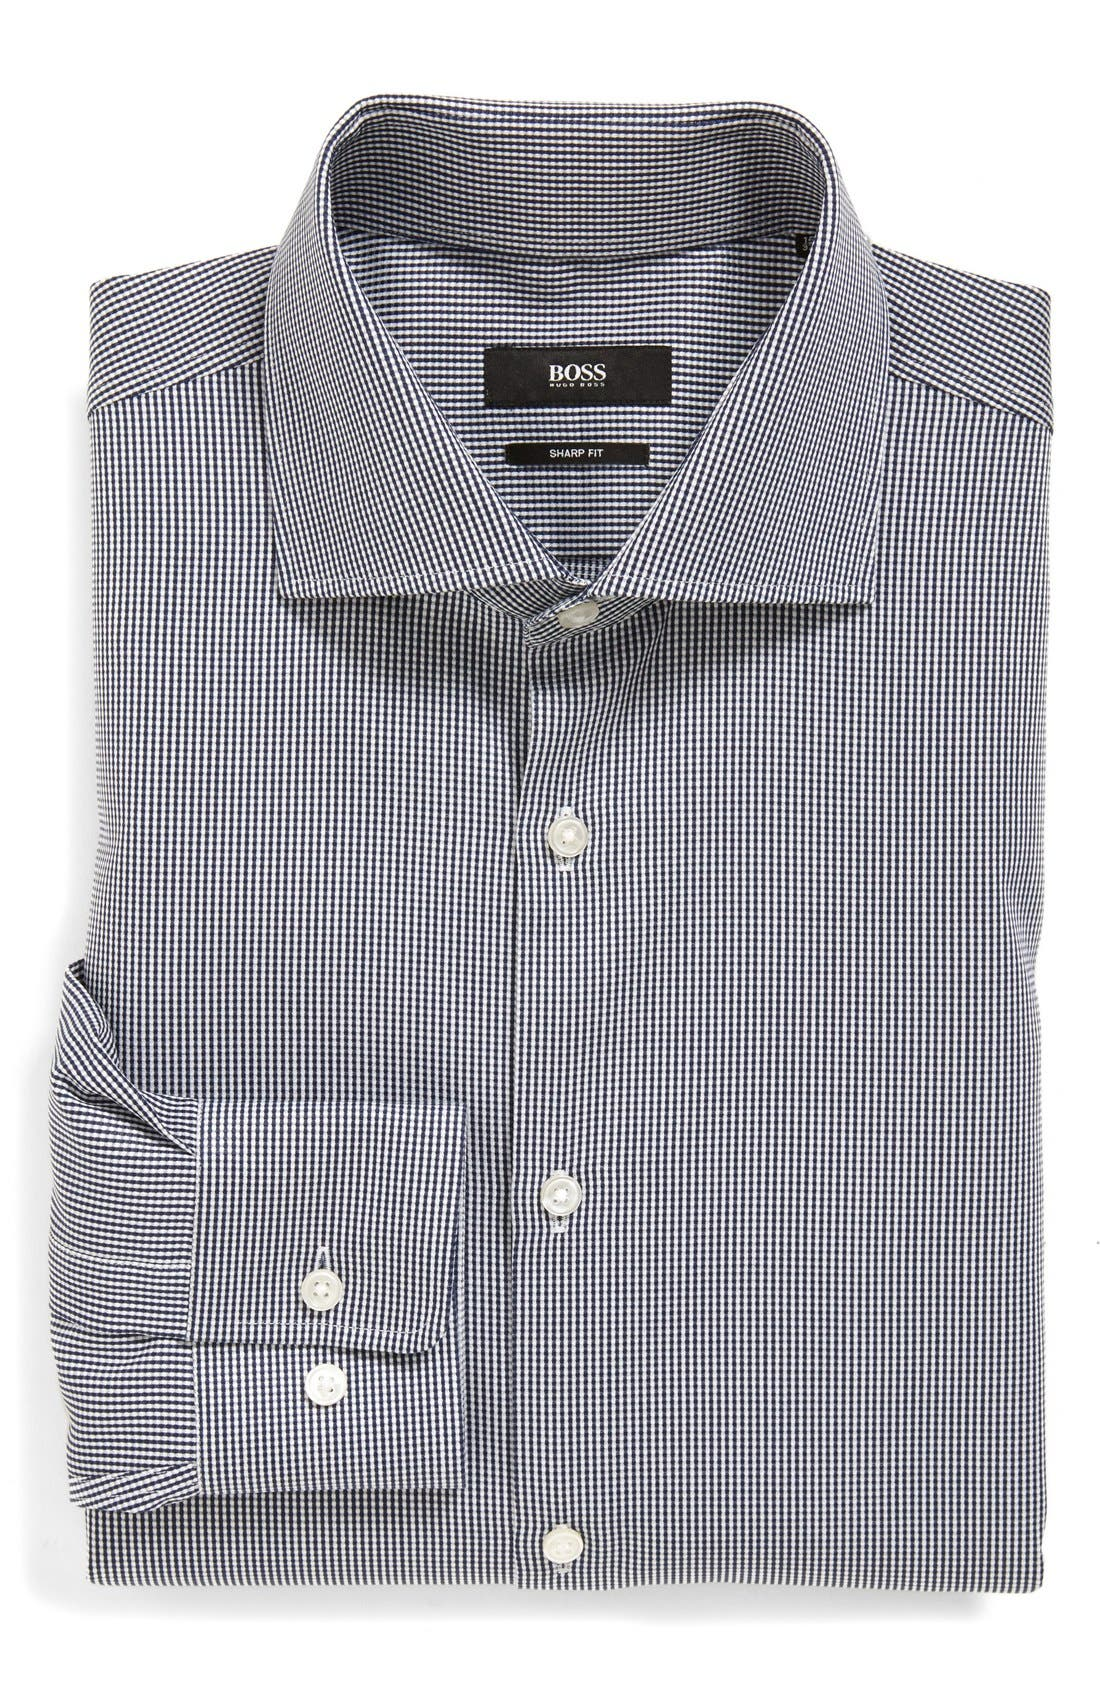 Main Image - BOSS 'Miles' Sharp Fit Check Dress Shirt